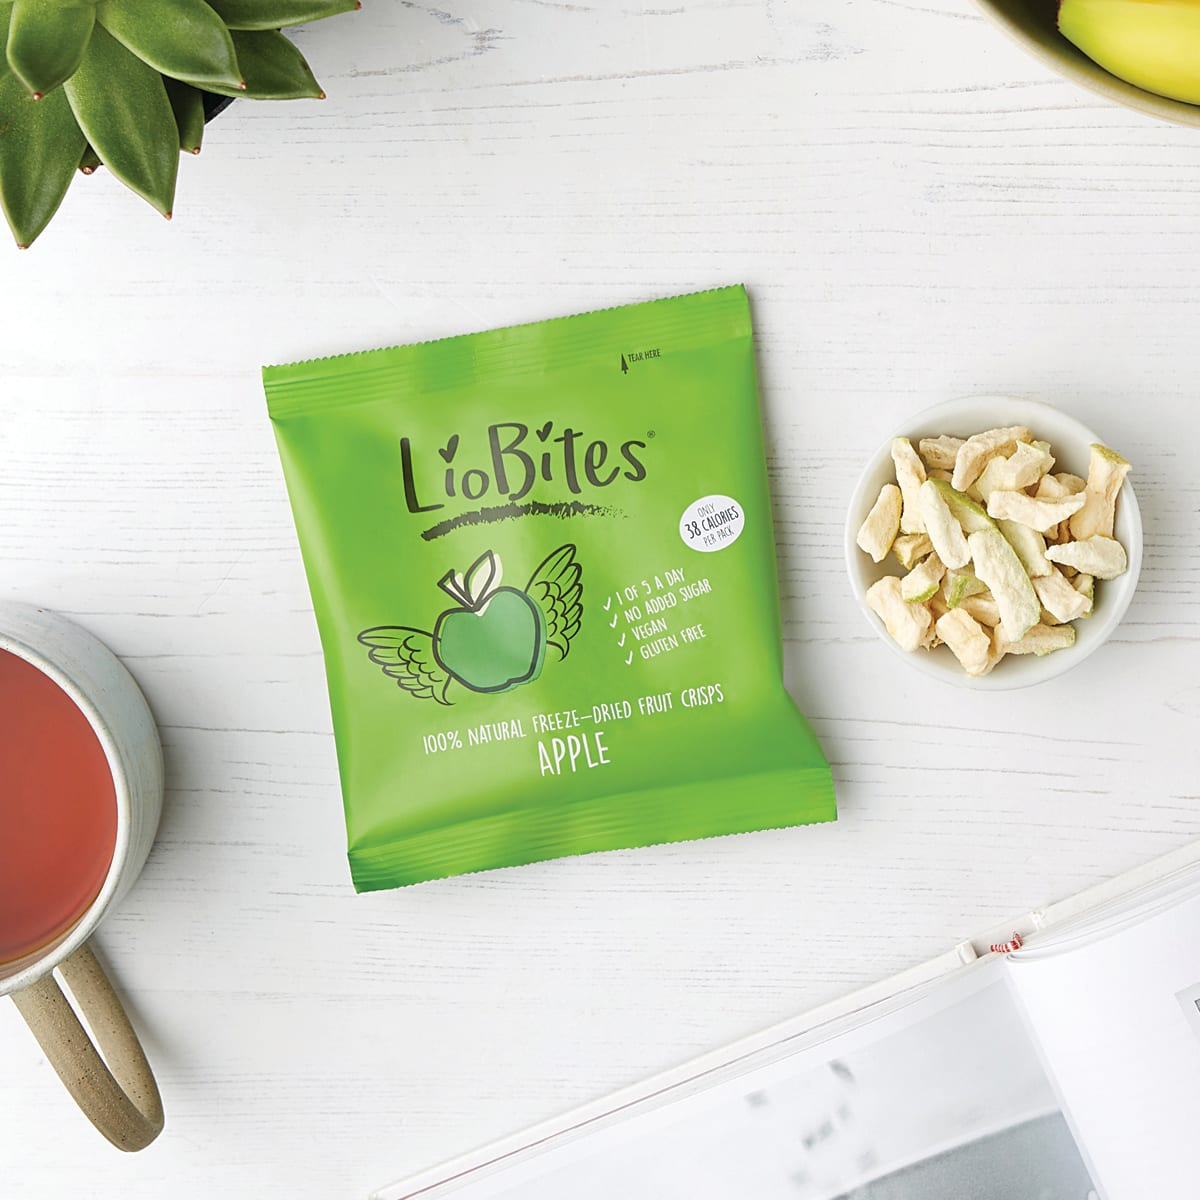 Liobites Apple Crisps, crunchy snack, 1 of your 5 a day, freeze dried, add to cereal or porridge 2 SmartPoints values, gluten free, suitable for vegans